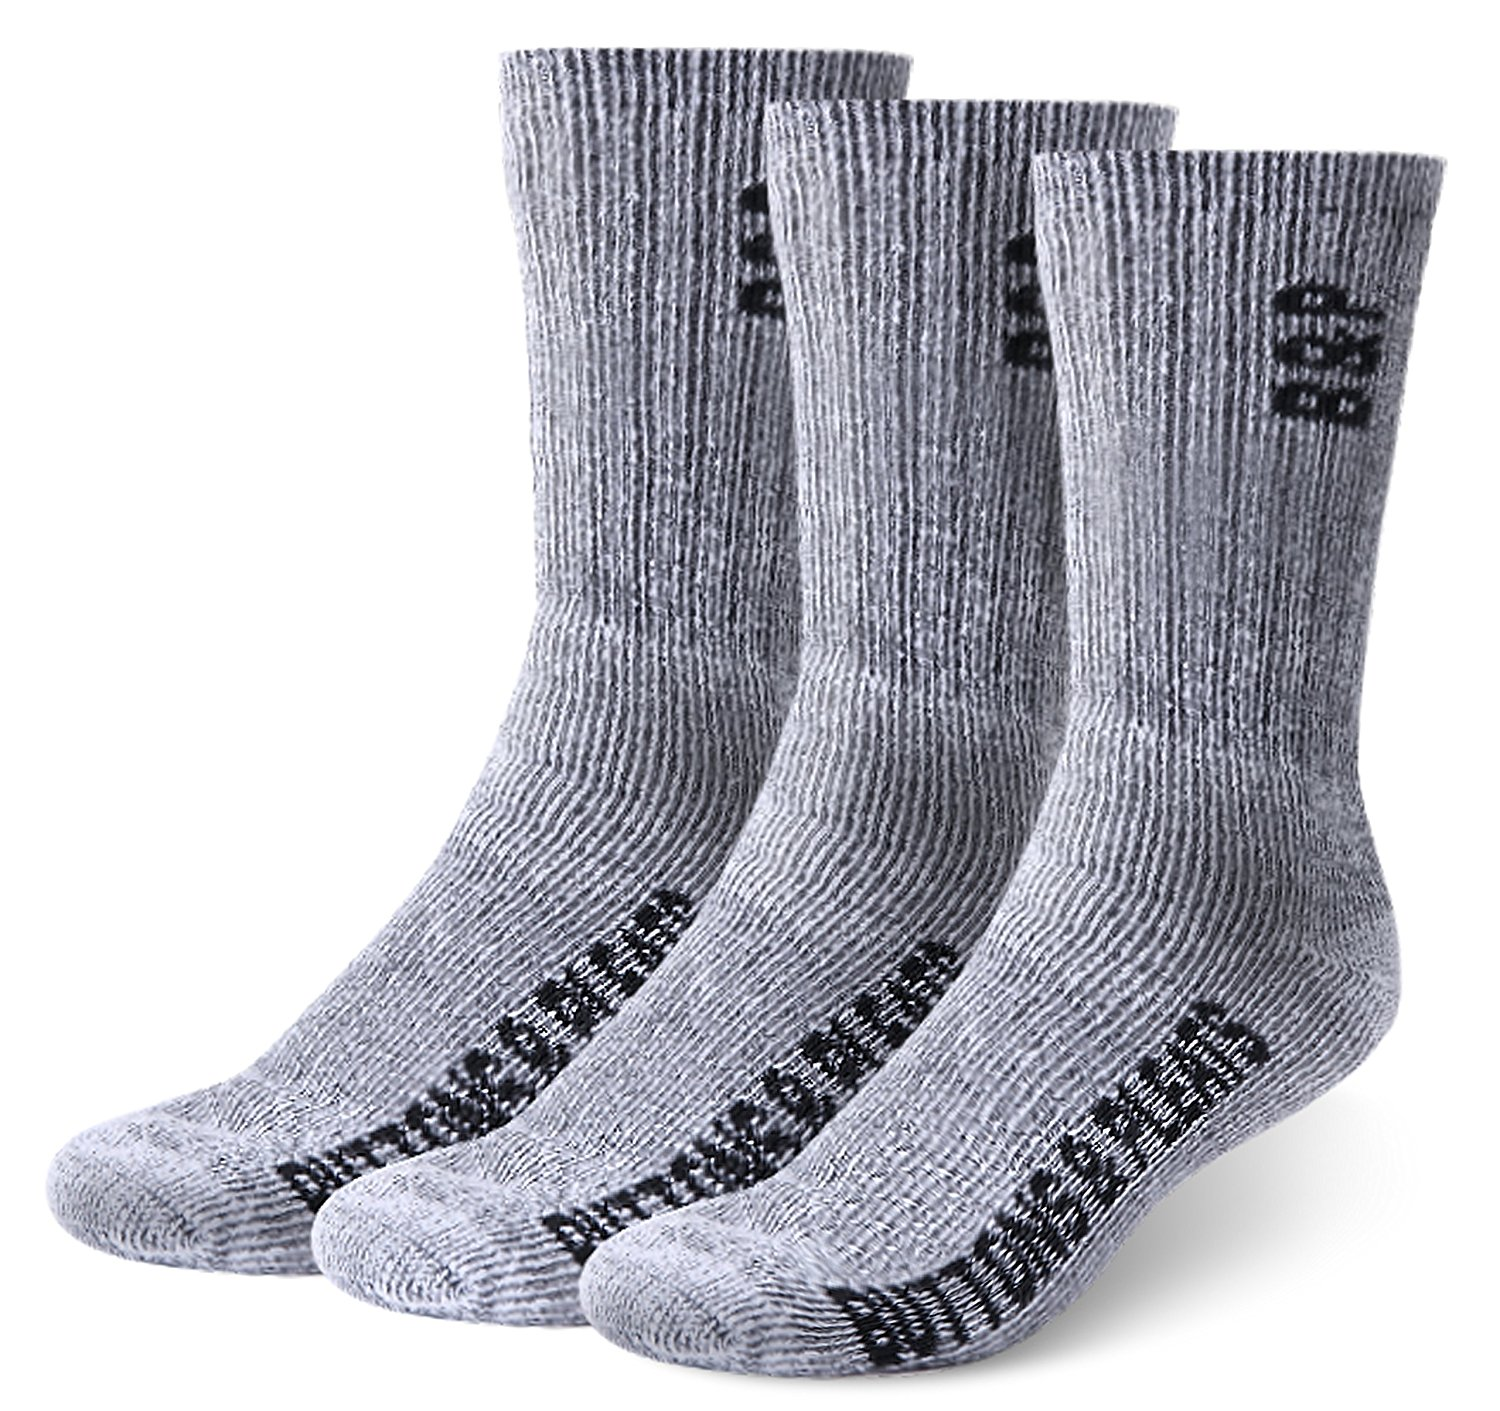 Buttons and Pleats Wool Hiking Socks Outdoor Trail Crew Socks 3 Pairs